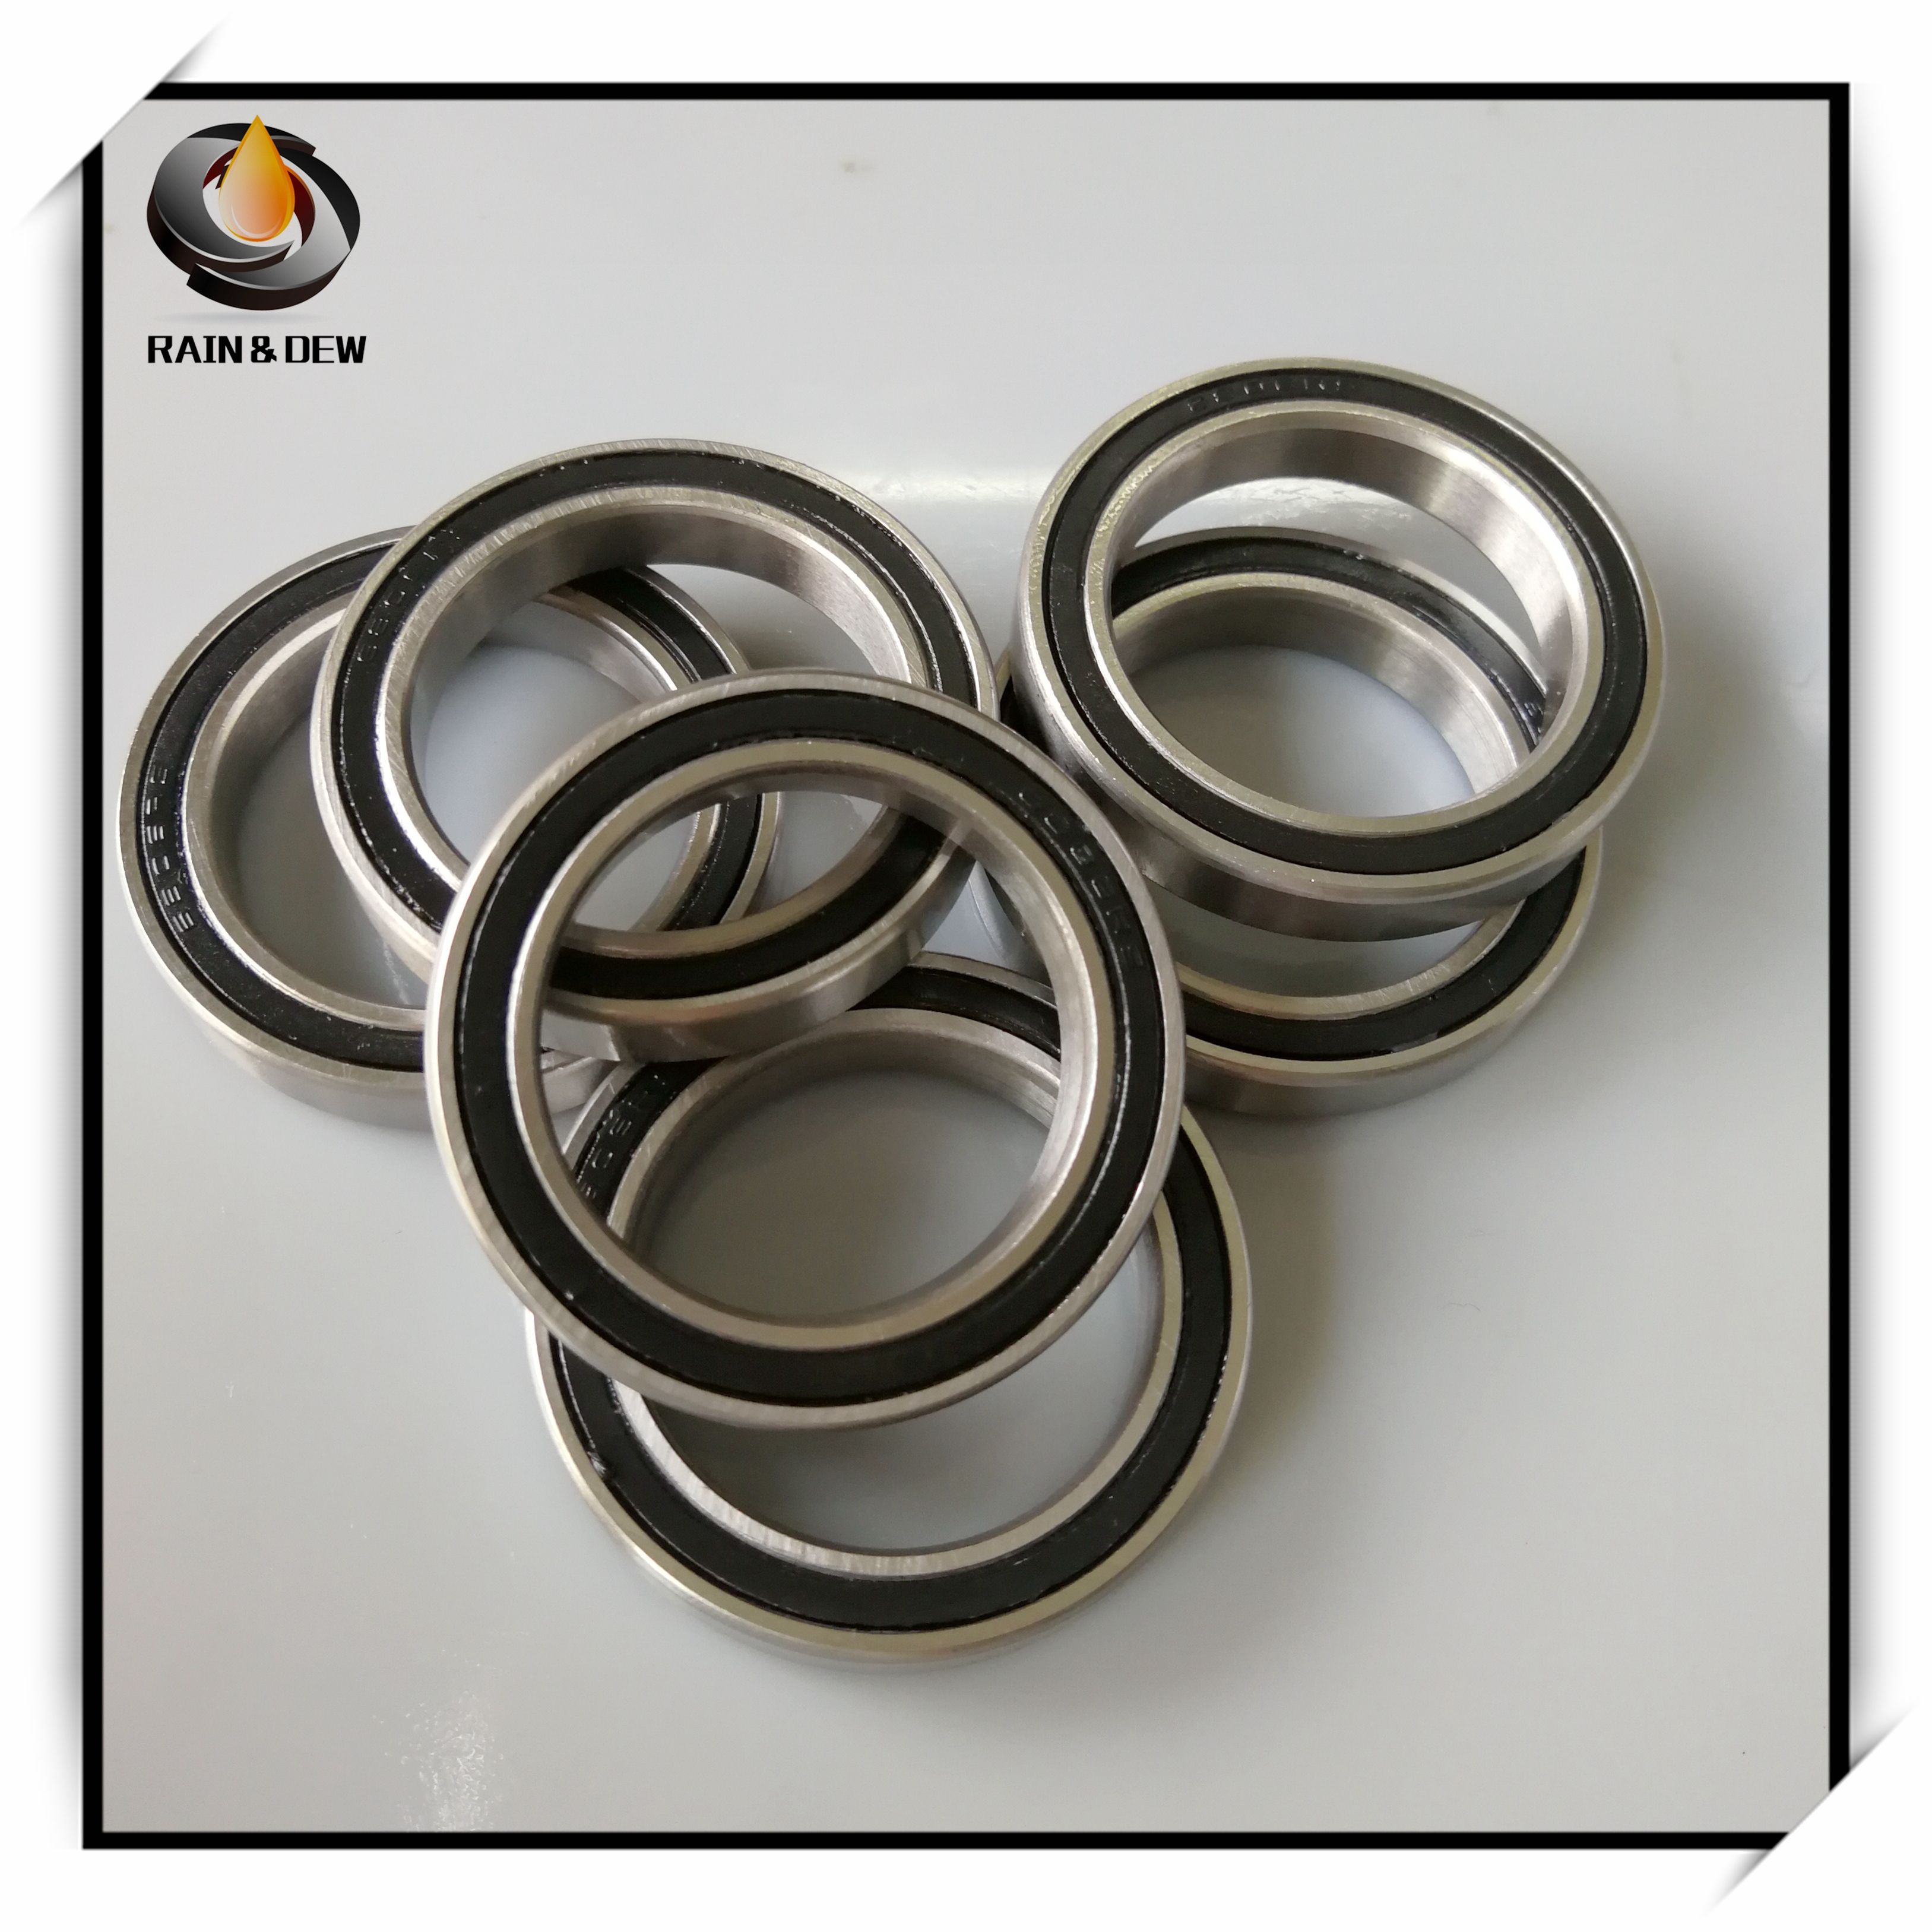 10Pcs <font><b>6805</b></font> 2RS Bearing 25*37*7 mm ABEC-7 Metric Thin Section 61805RS <font><b>6805</b></font> <font><b>RS</b></font> Ball Bearings 6805RS image